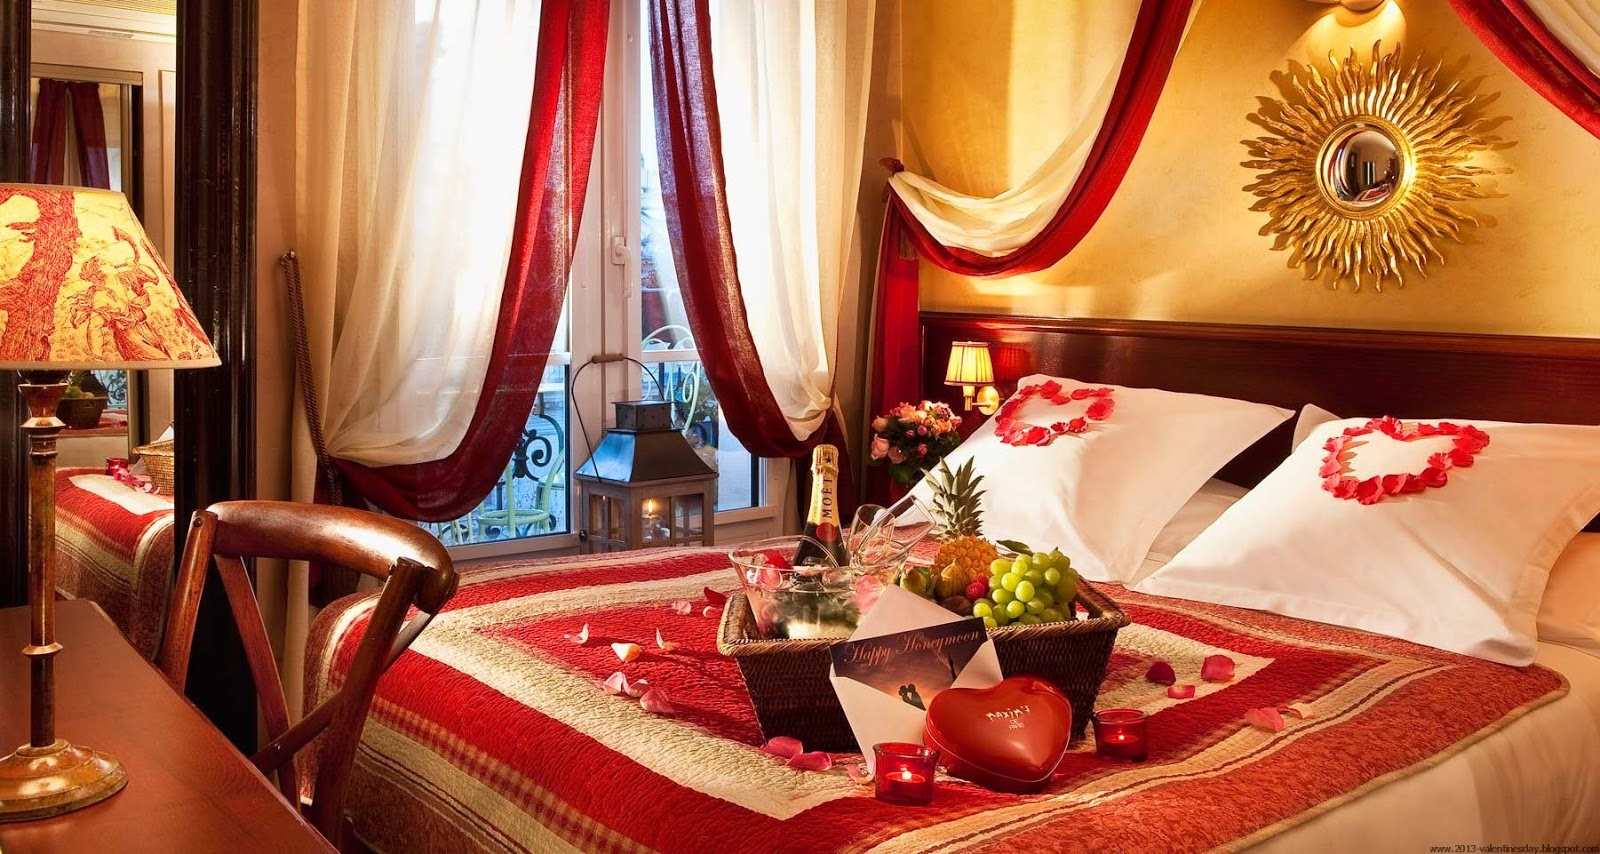 Valentine 39 s day bed decoration ideas valentines day for Valentine day ideas for couples